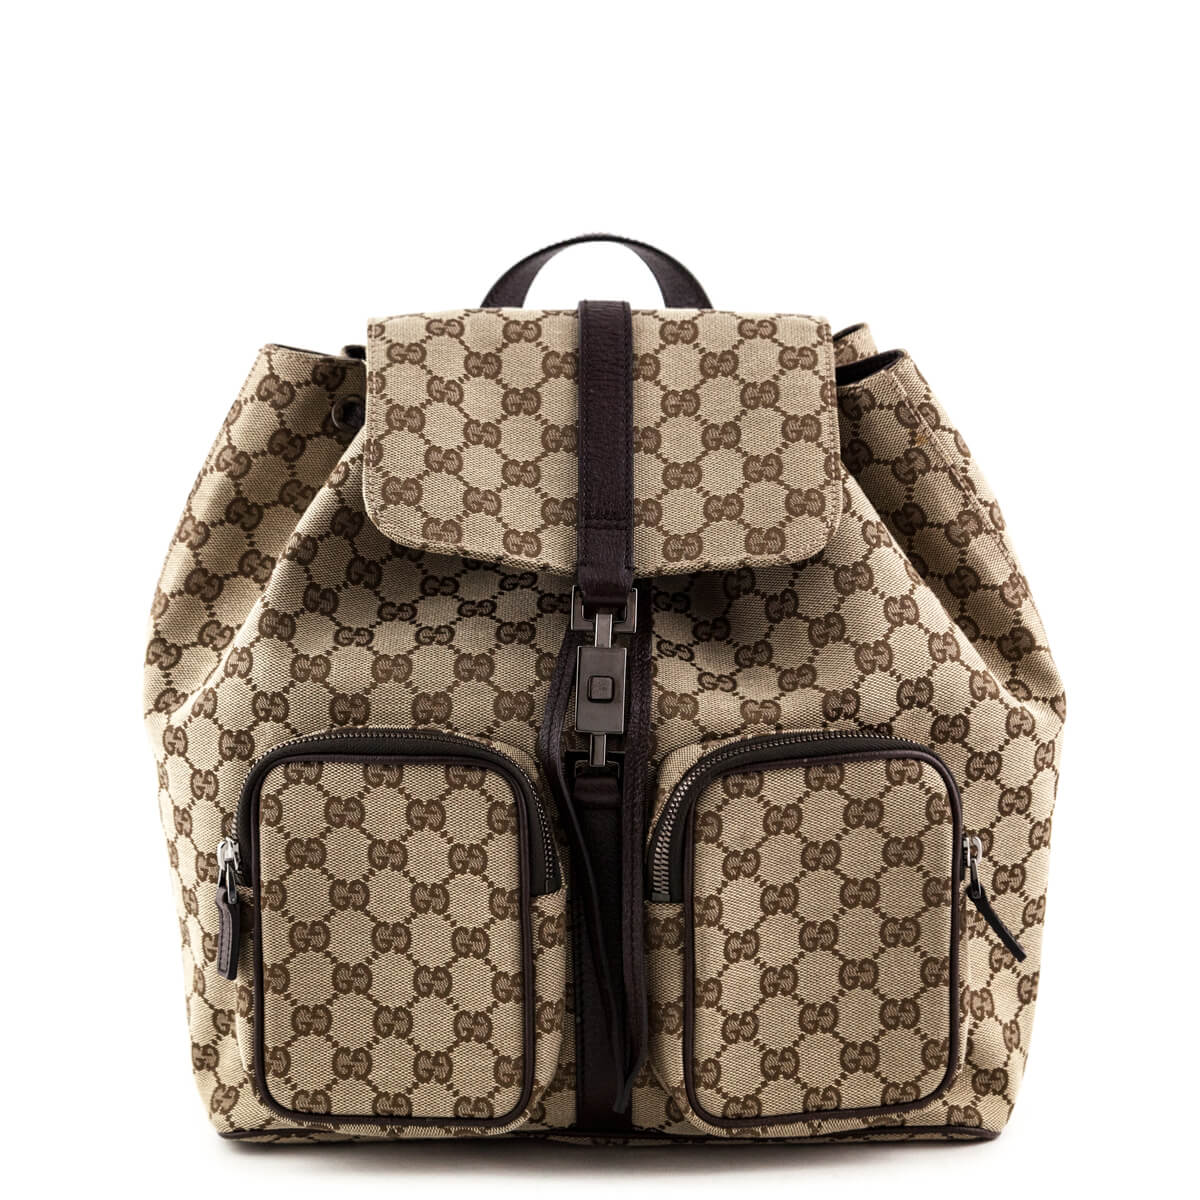 83dfa241bdb94a Gucci GG Canvas Abbey Backpack - LOVE that BAG - Preowned Authentic  Designer Handbags ...